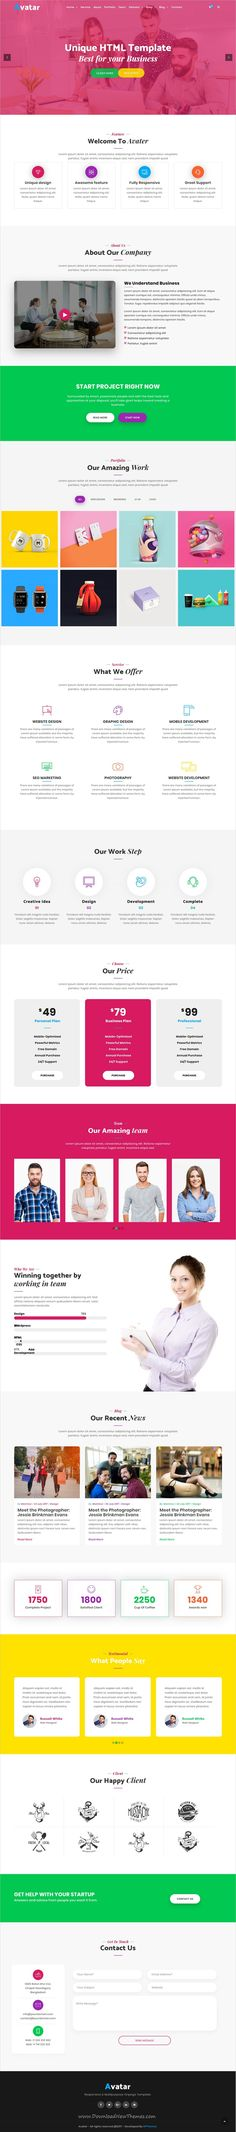 Avatar is clean and modern design responsive #bootstrap template for onepage #startup #business agencies website with 7 niche homepage layouts download now..